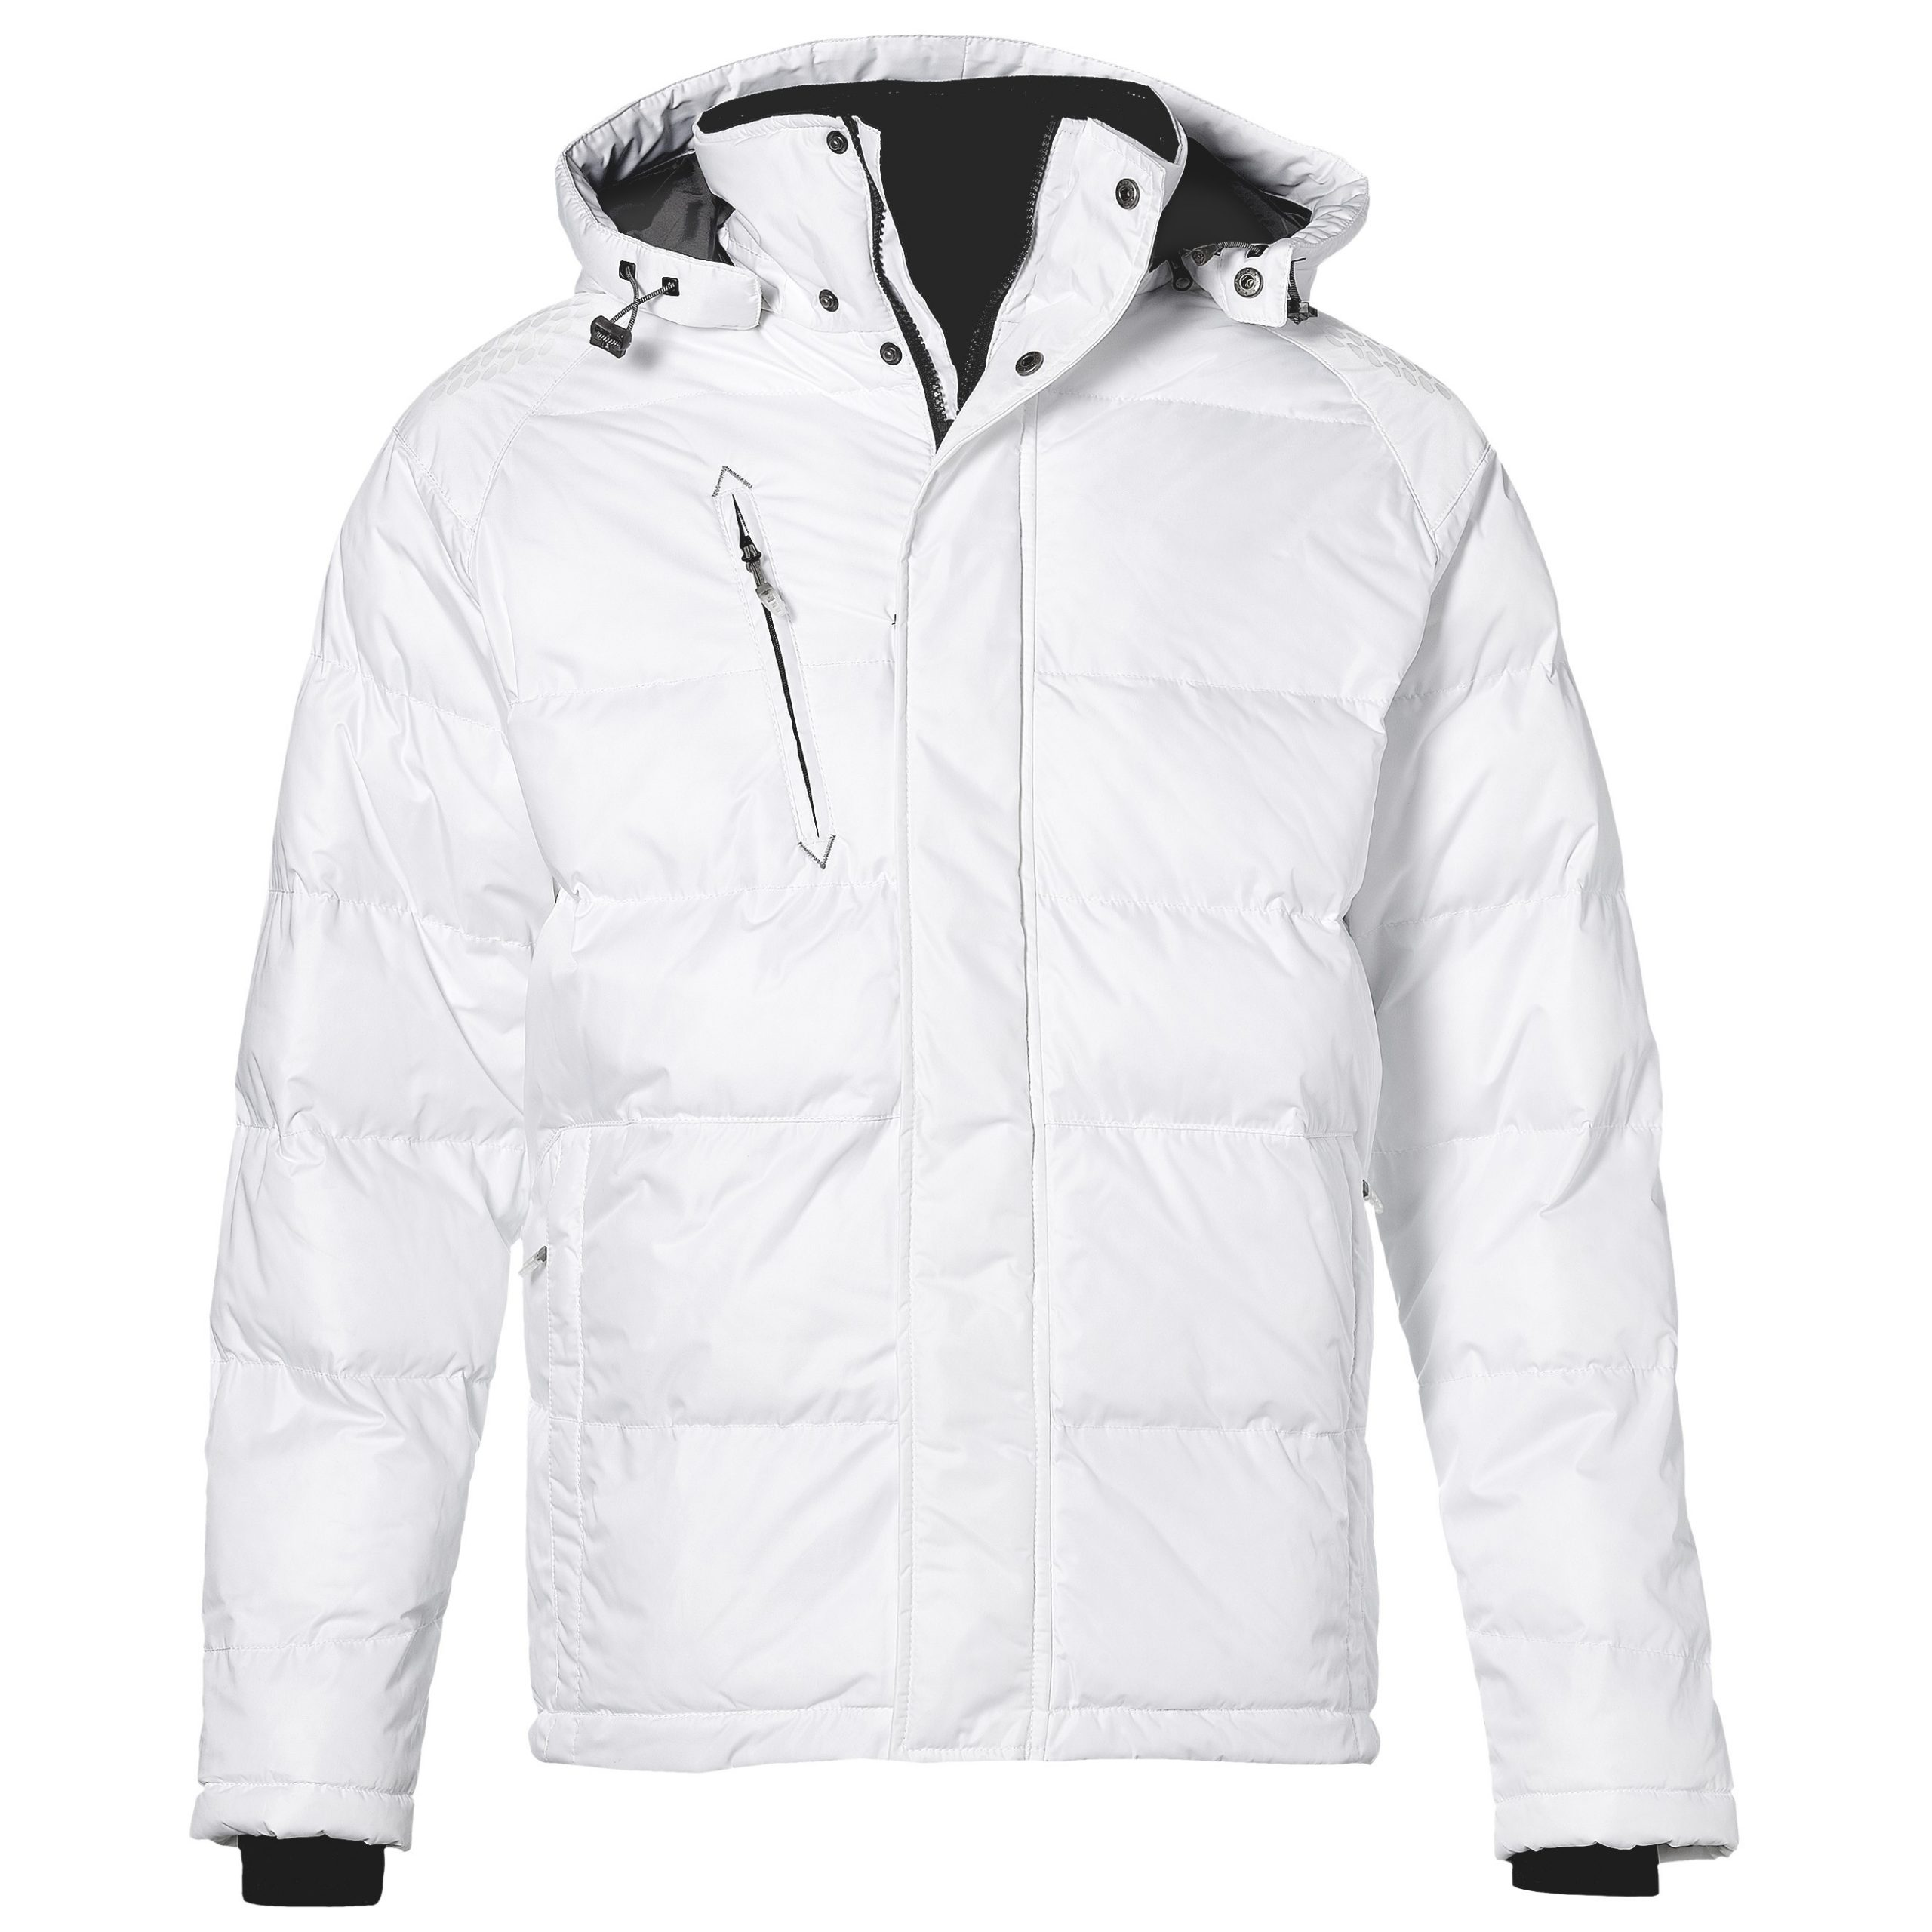 Mens Balkan Insulated Jacket - White Only